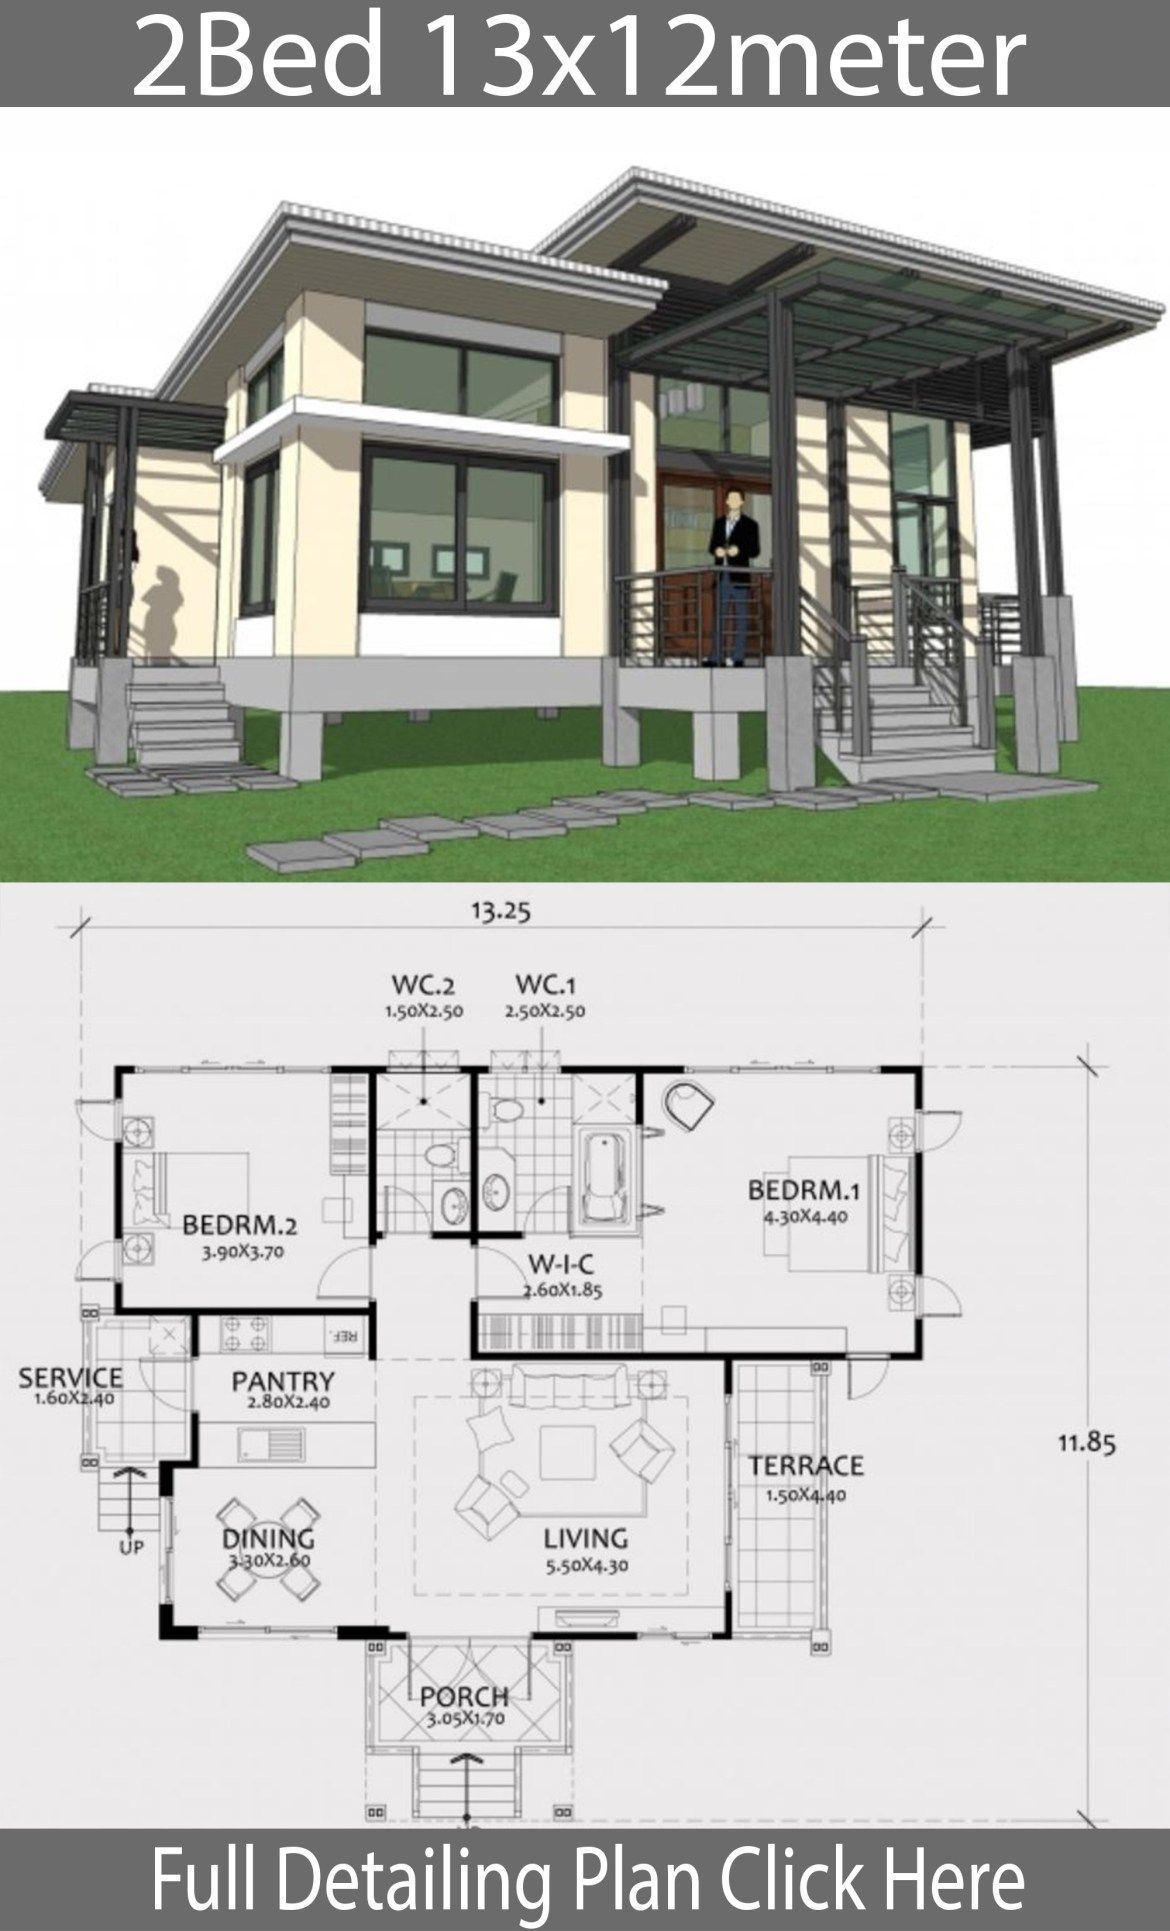 One Story Homes House Plans Story House House Plans One Story Architectural House Plans Modern House Plans Desain Rumah Mungil Rumah Impian Desain Rumah